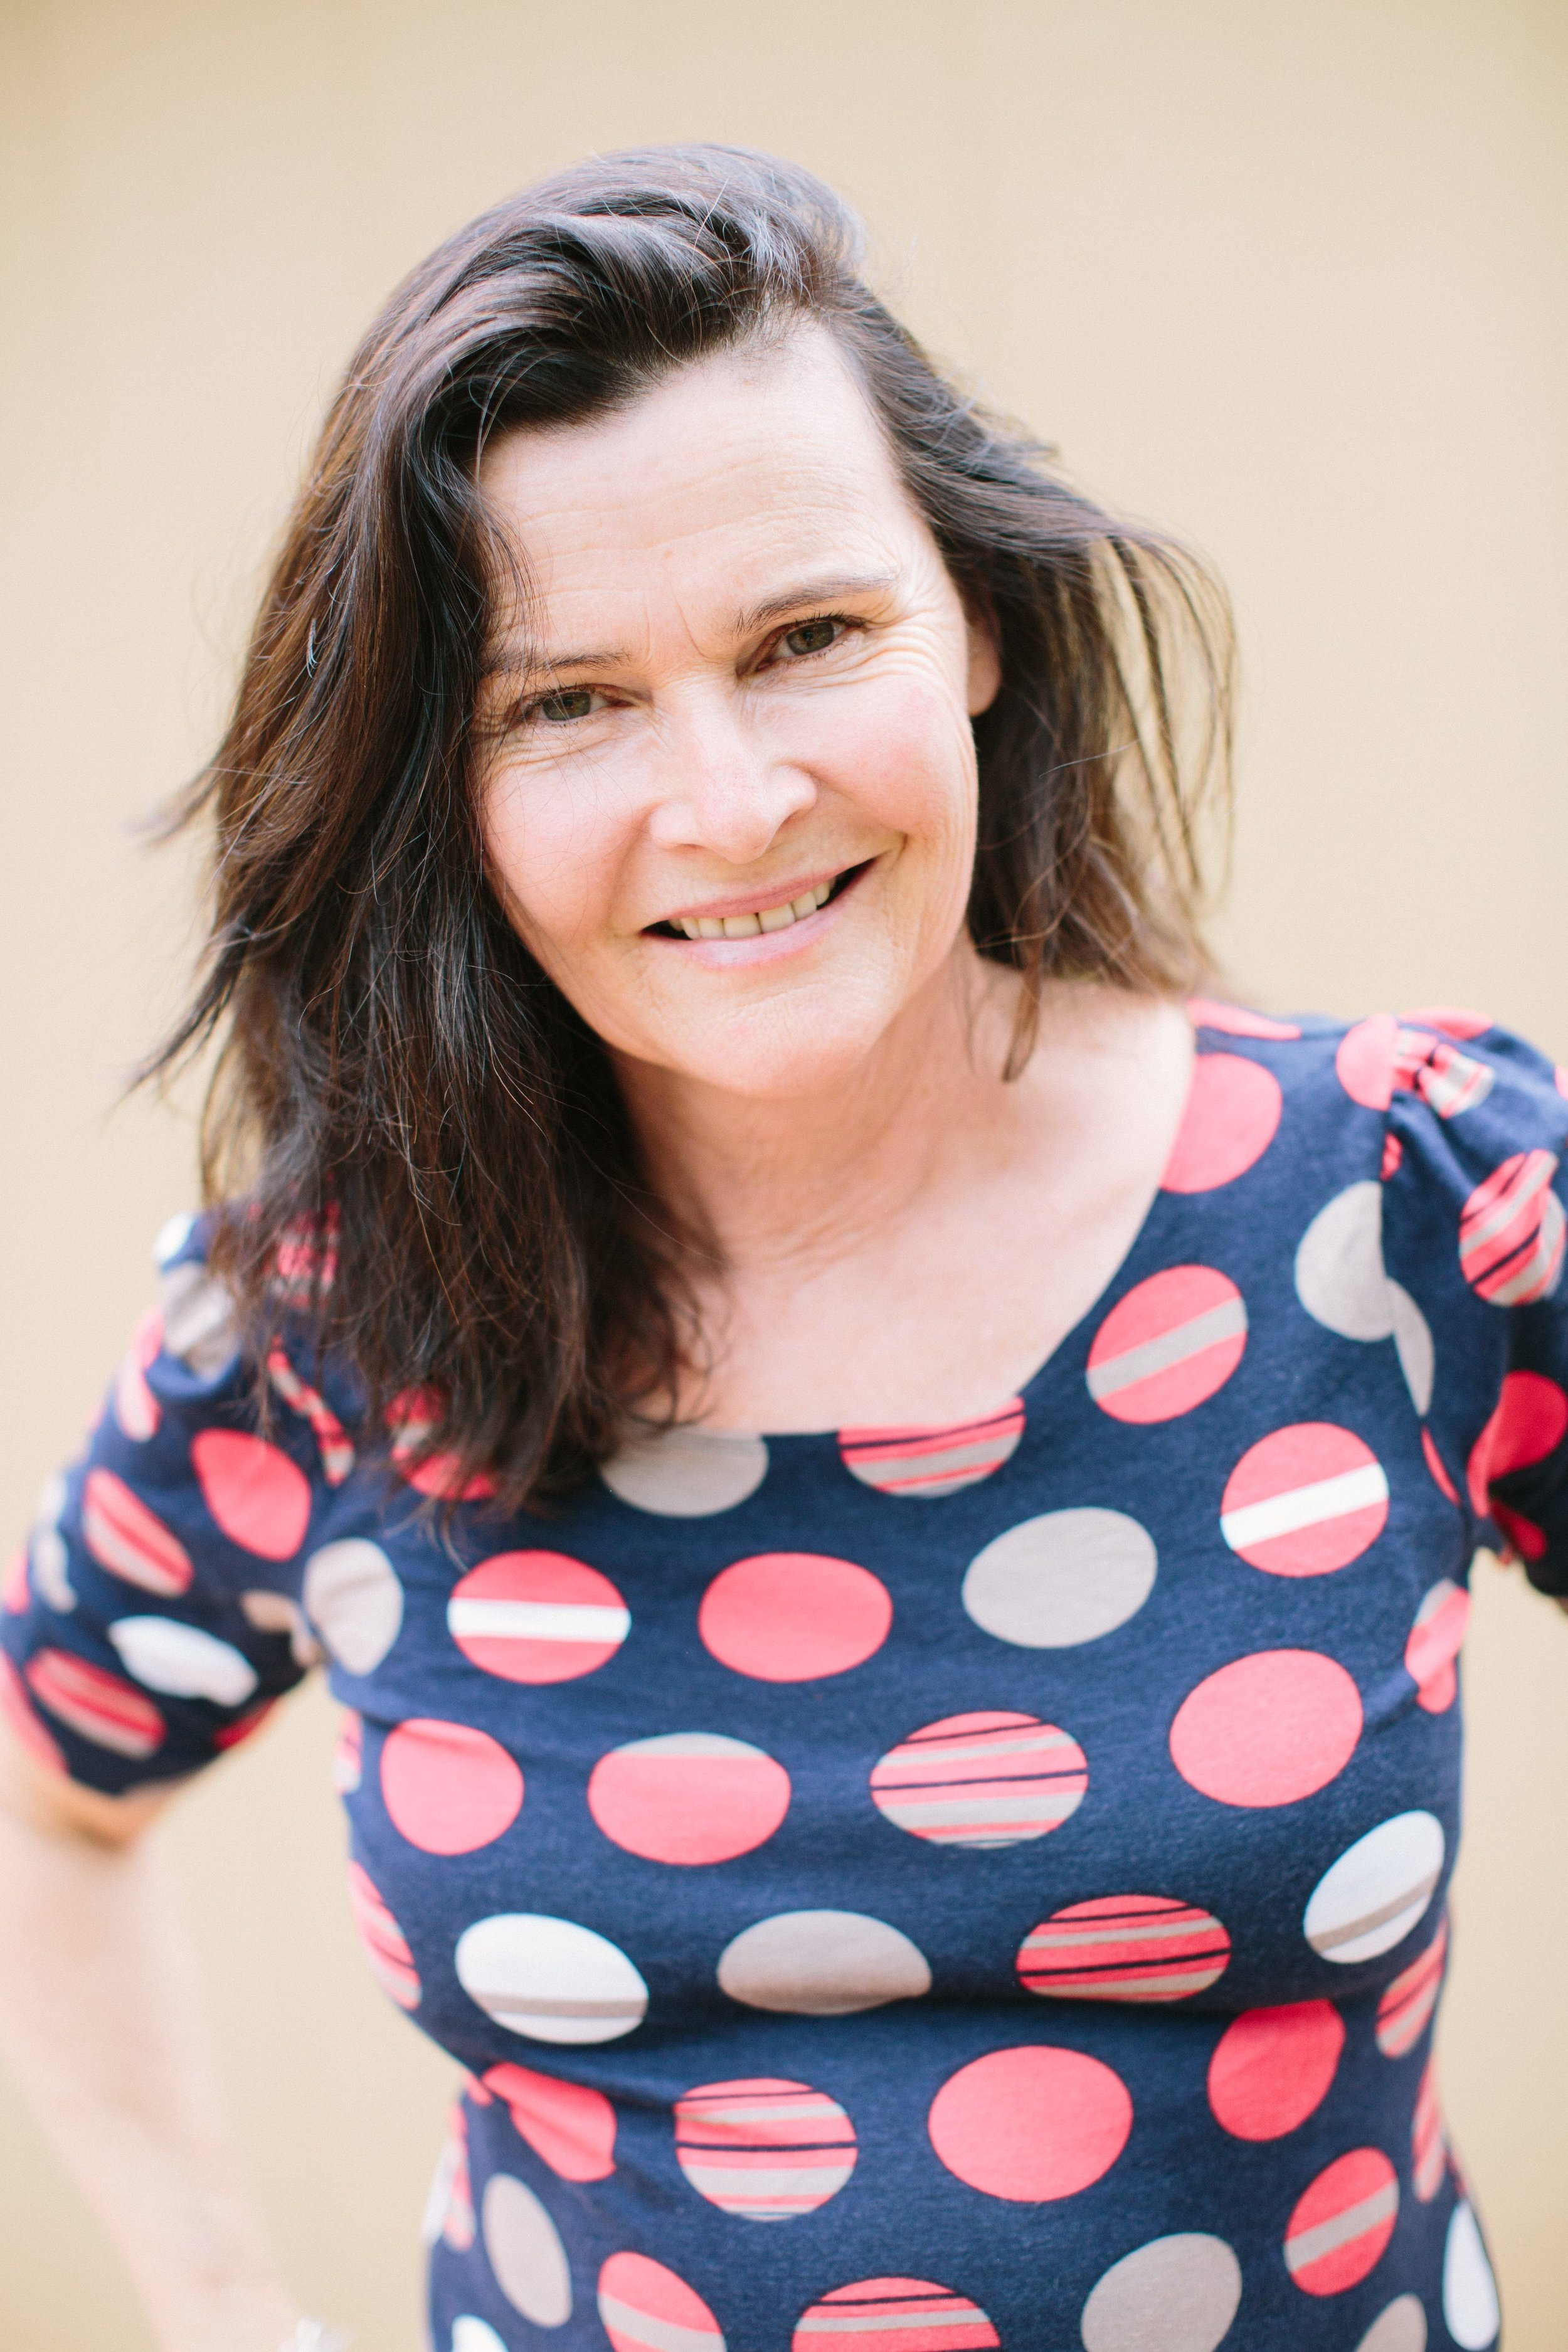 Lisa Fugard - is the author of Skinner's Drift and 21 Days to Awaken the Writer Within. Her creative work has been published in Story, Outside and other literary magazines, while her many travel articles, essays and book reviews have been published in the New York Times.